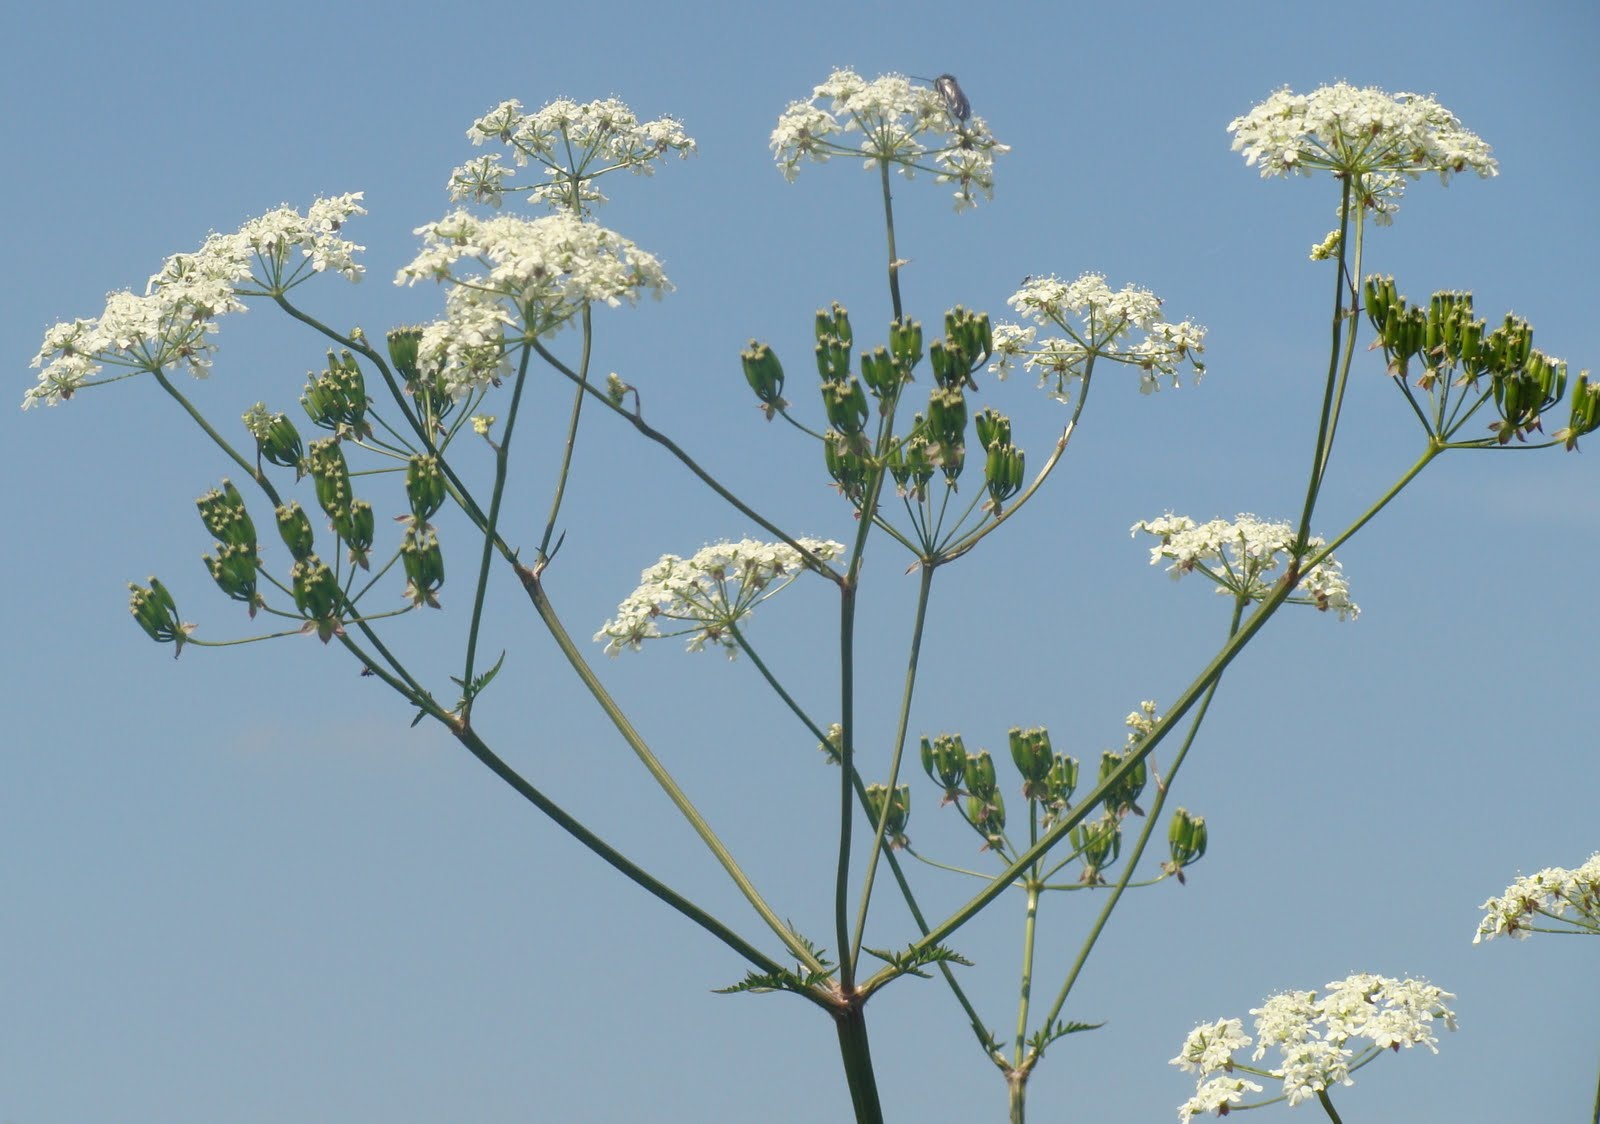 Stickers On Wall For Bedroom 1000 Images About Cowparsley On Pinterest Blue